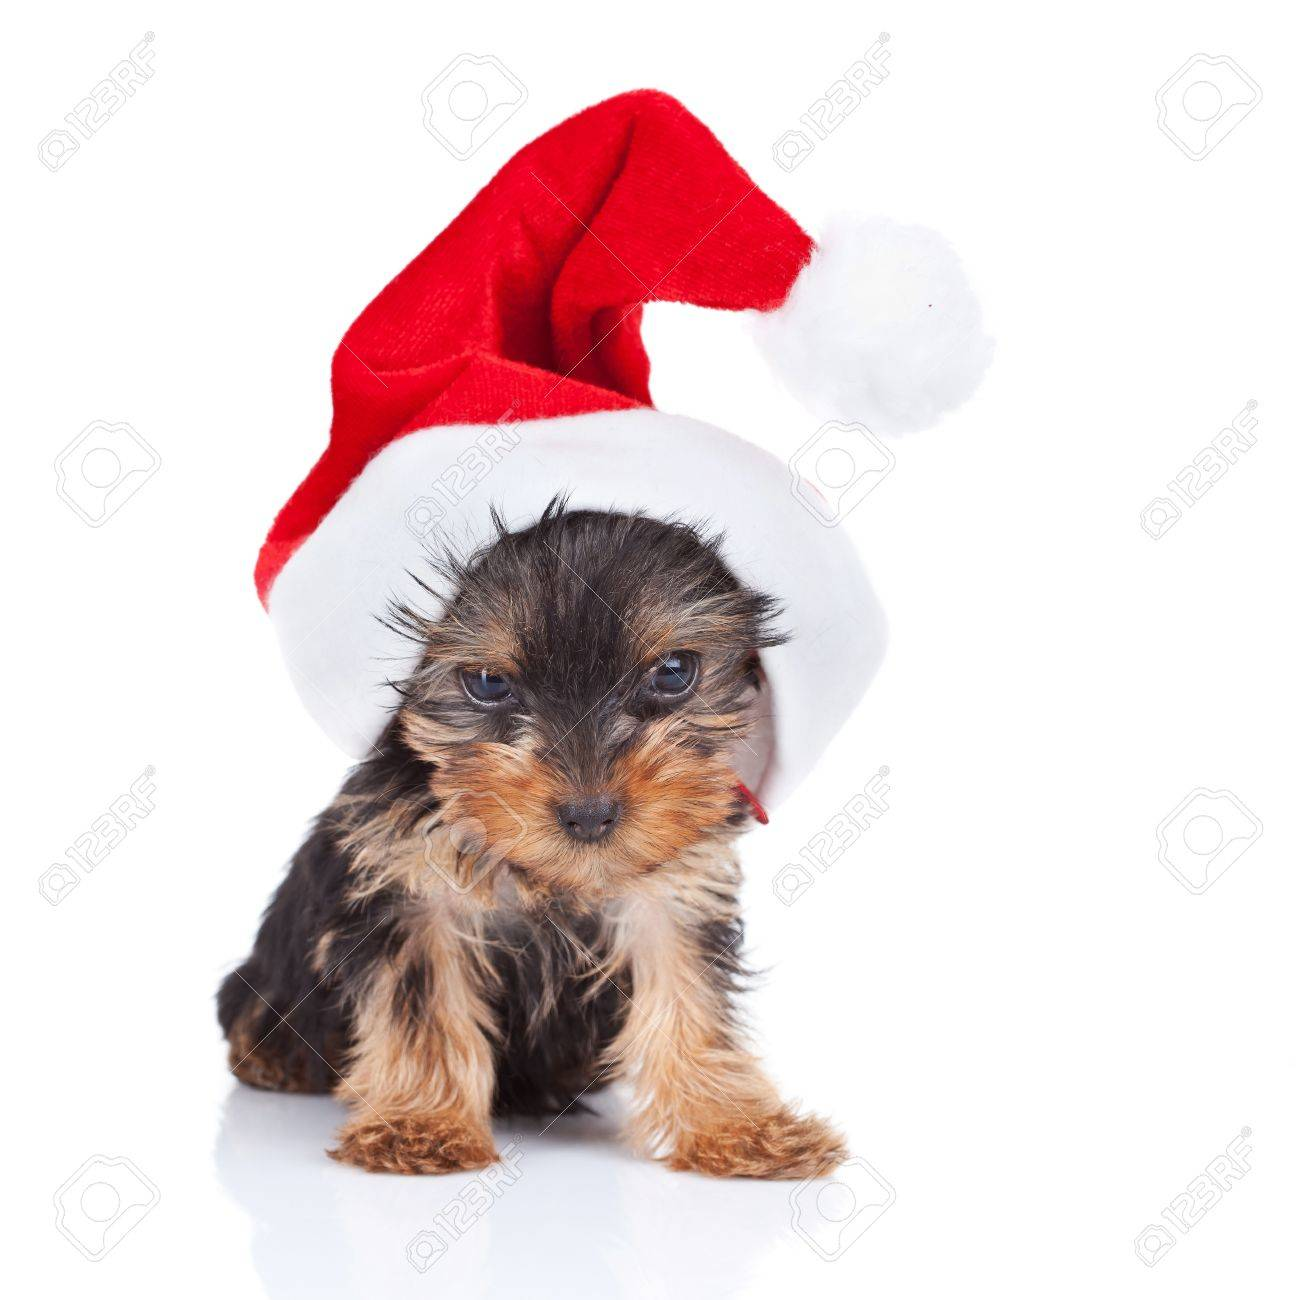 Image of: Day Ecard Cute Yorkie Toy Wearing Nice Santa Cap Over White Stock Photo 10933587 Max Pixel Cute Yorkie Toy Wearing Nice Santa Cap Over White Stock Photo